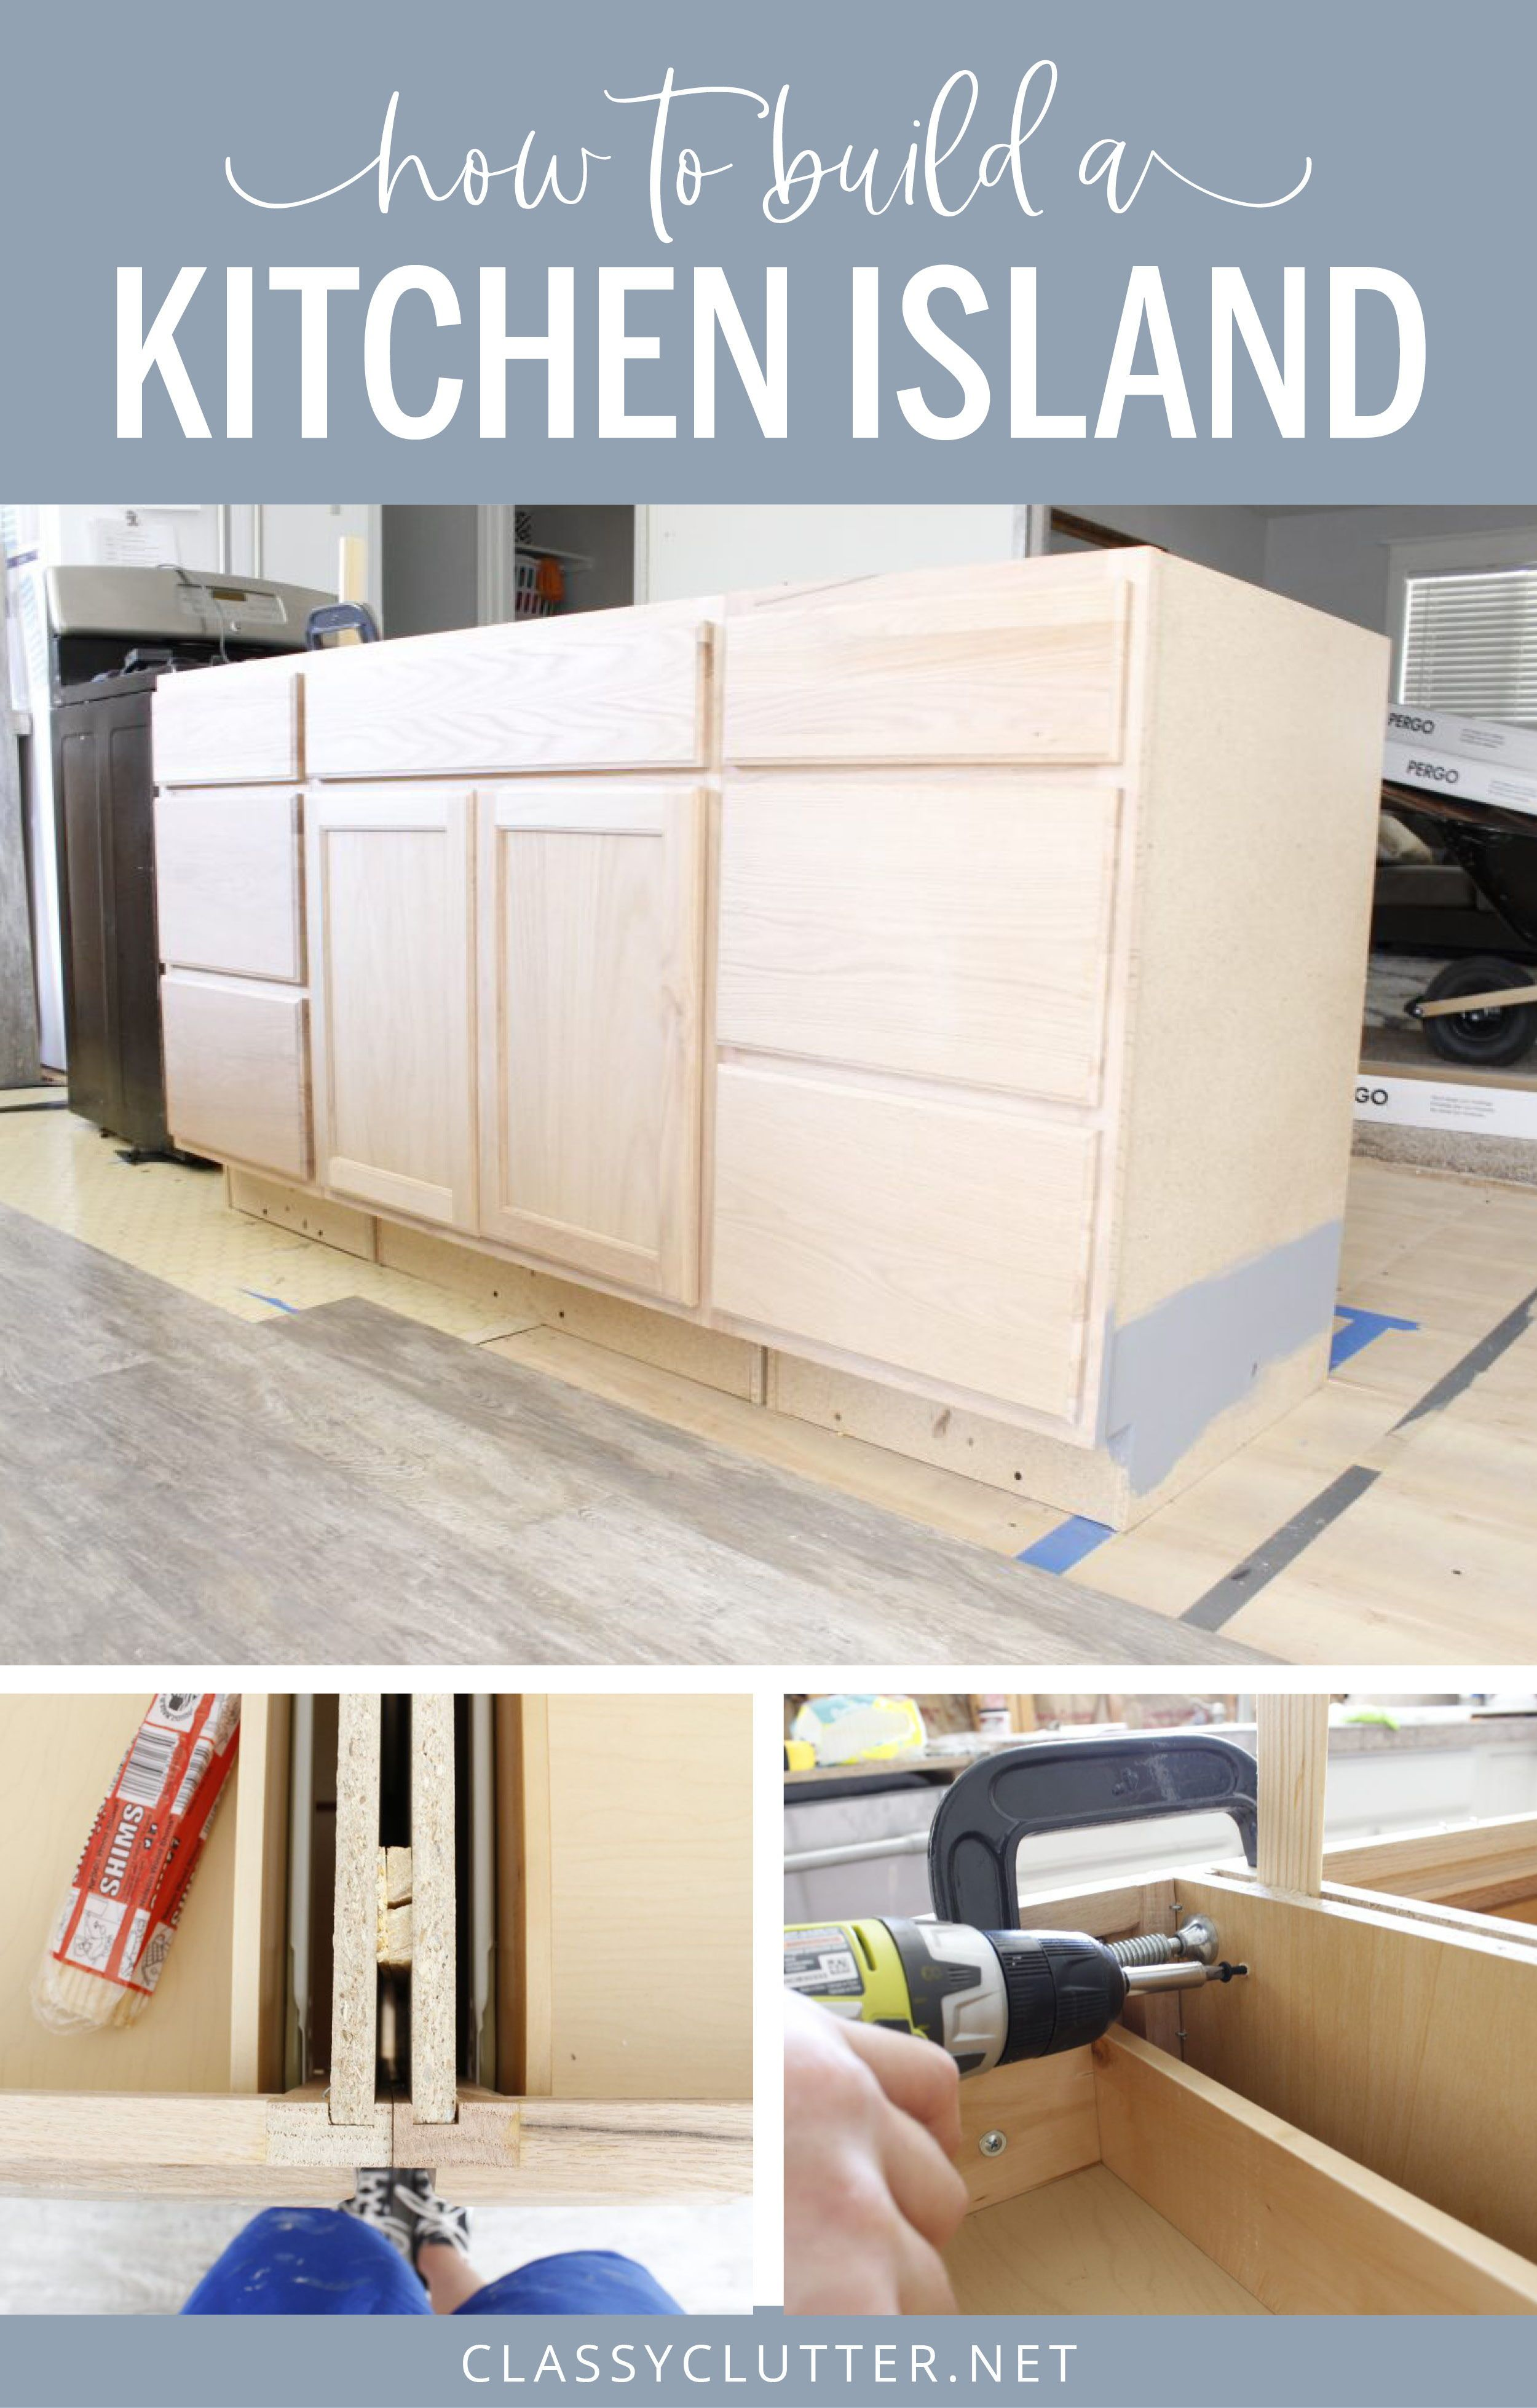 How To Build A Kitchen Island Easy Diy Kitchen Island In 2020 Building A Kitchen Build Kitchen Island Diy Kitchen Island